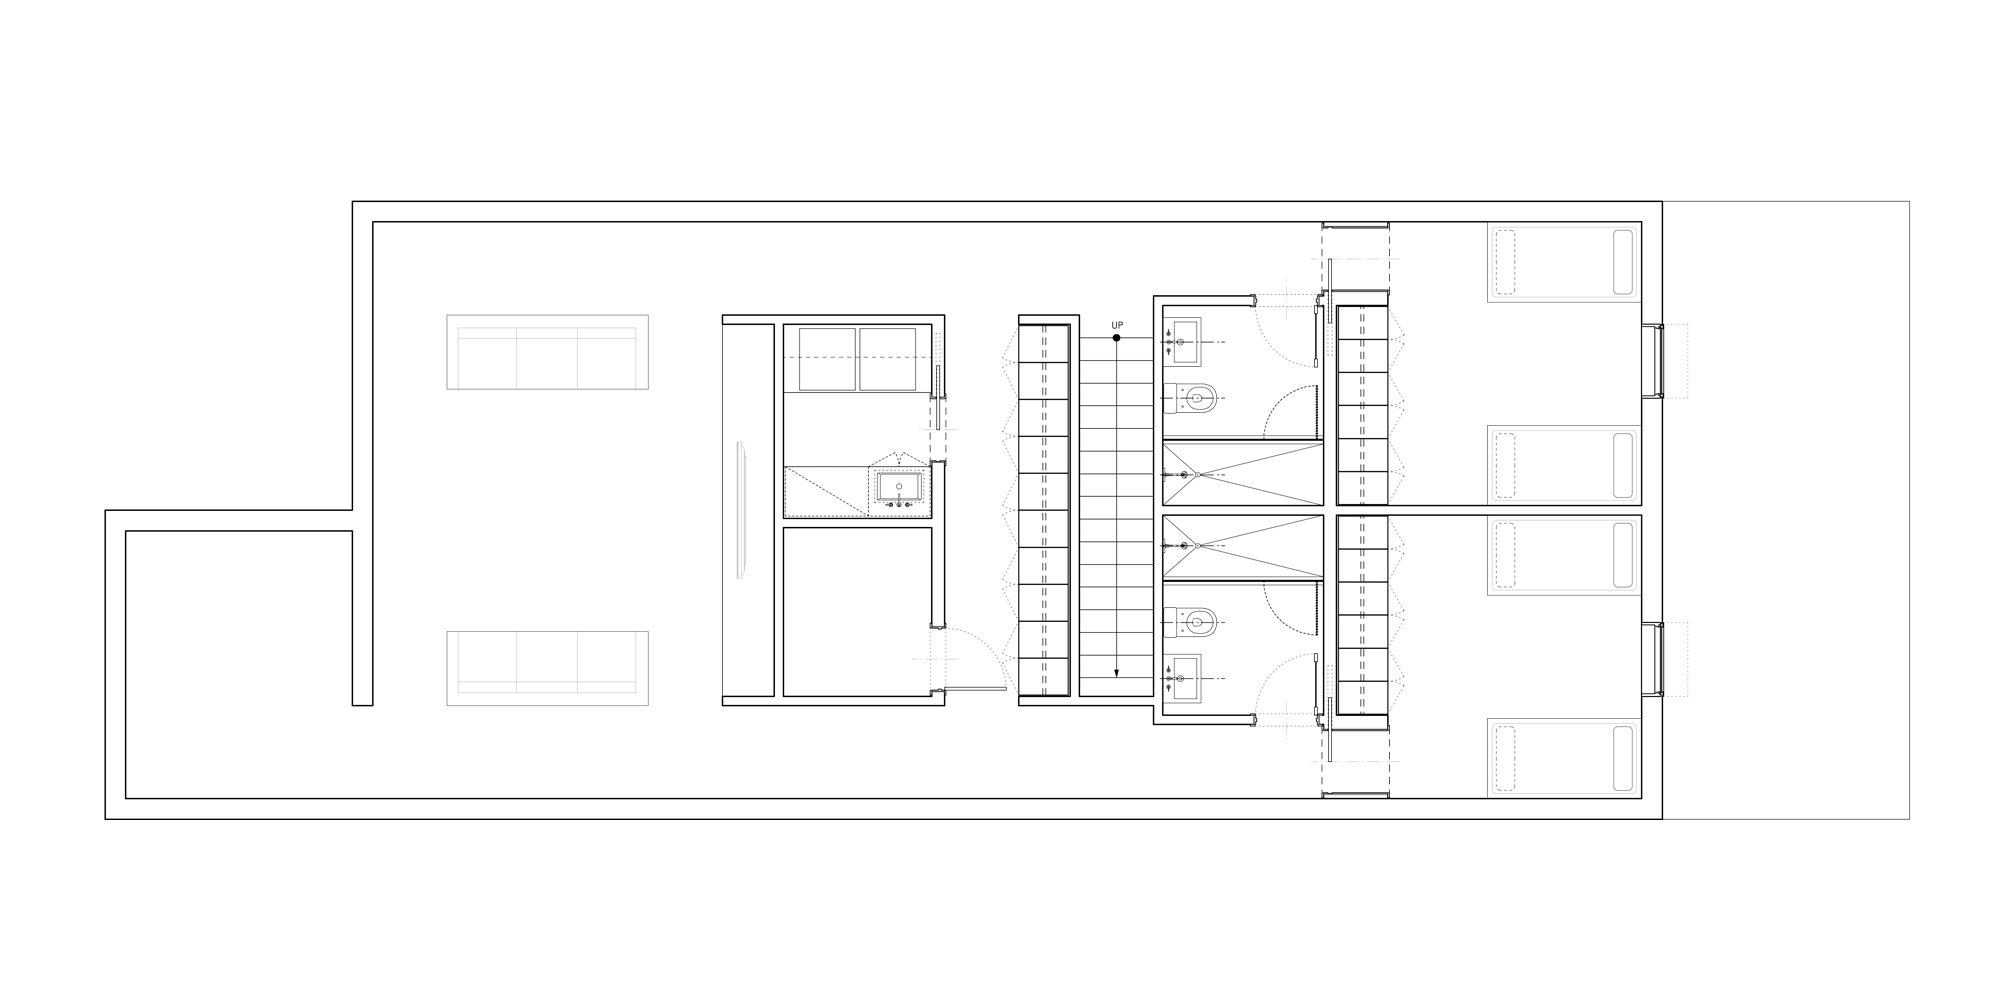 res4 resolution 4 architecture seaside residence